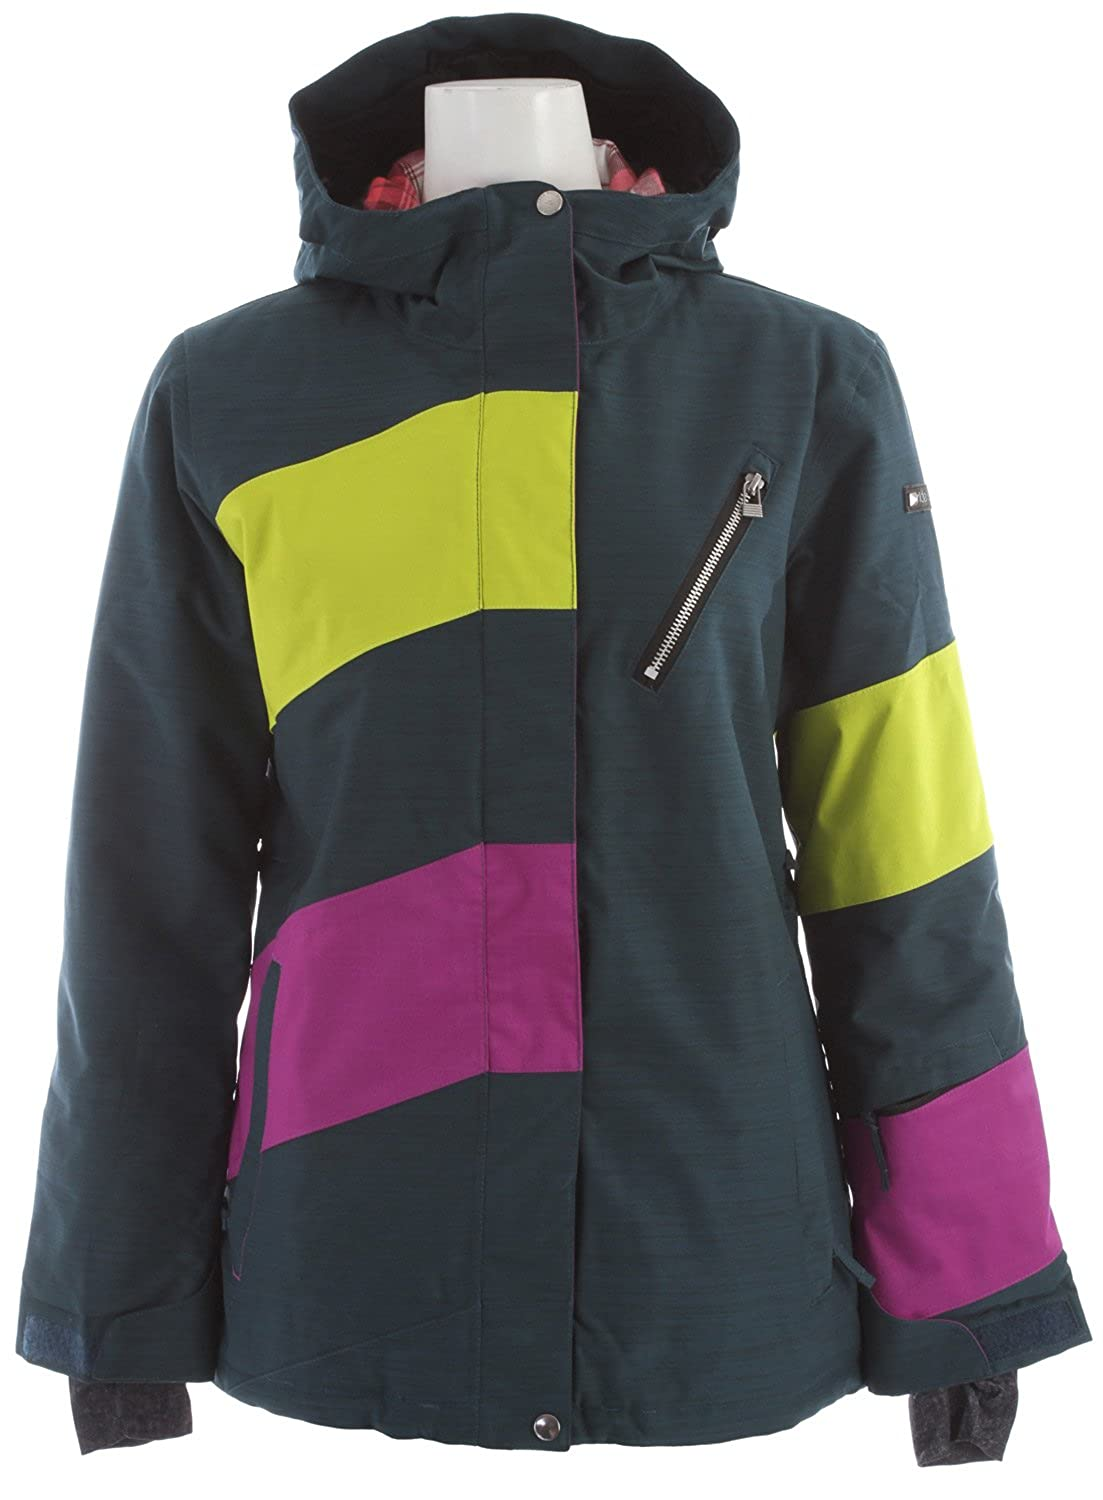 ec648fcdc96e Amazon.com  Ride Magnolia Snowboard Jacket  Clothing